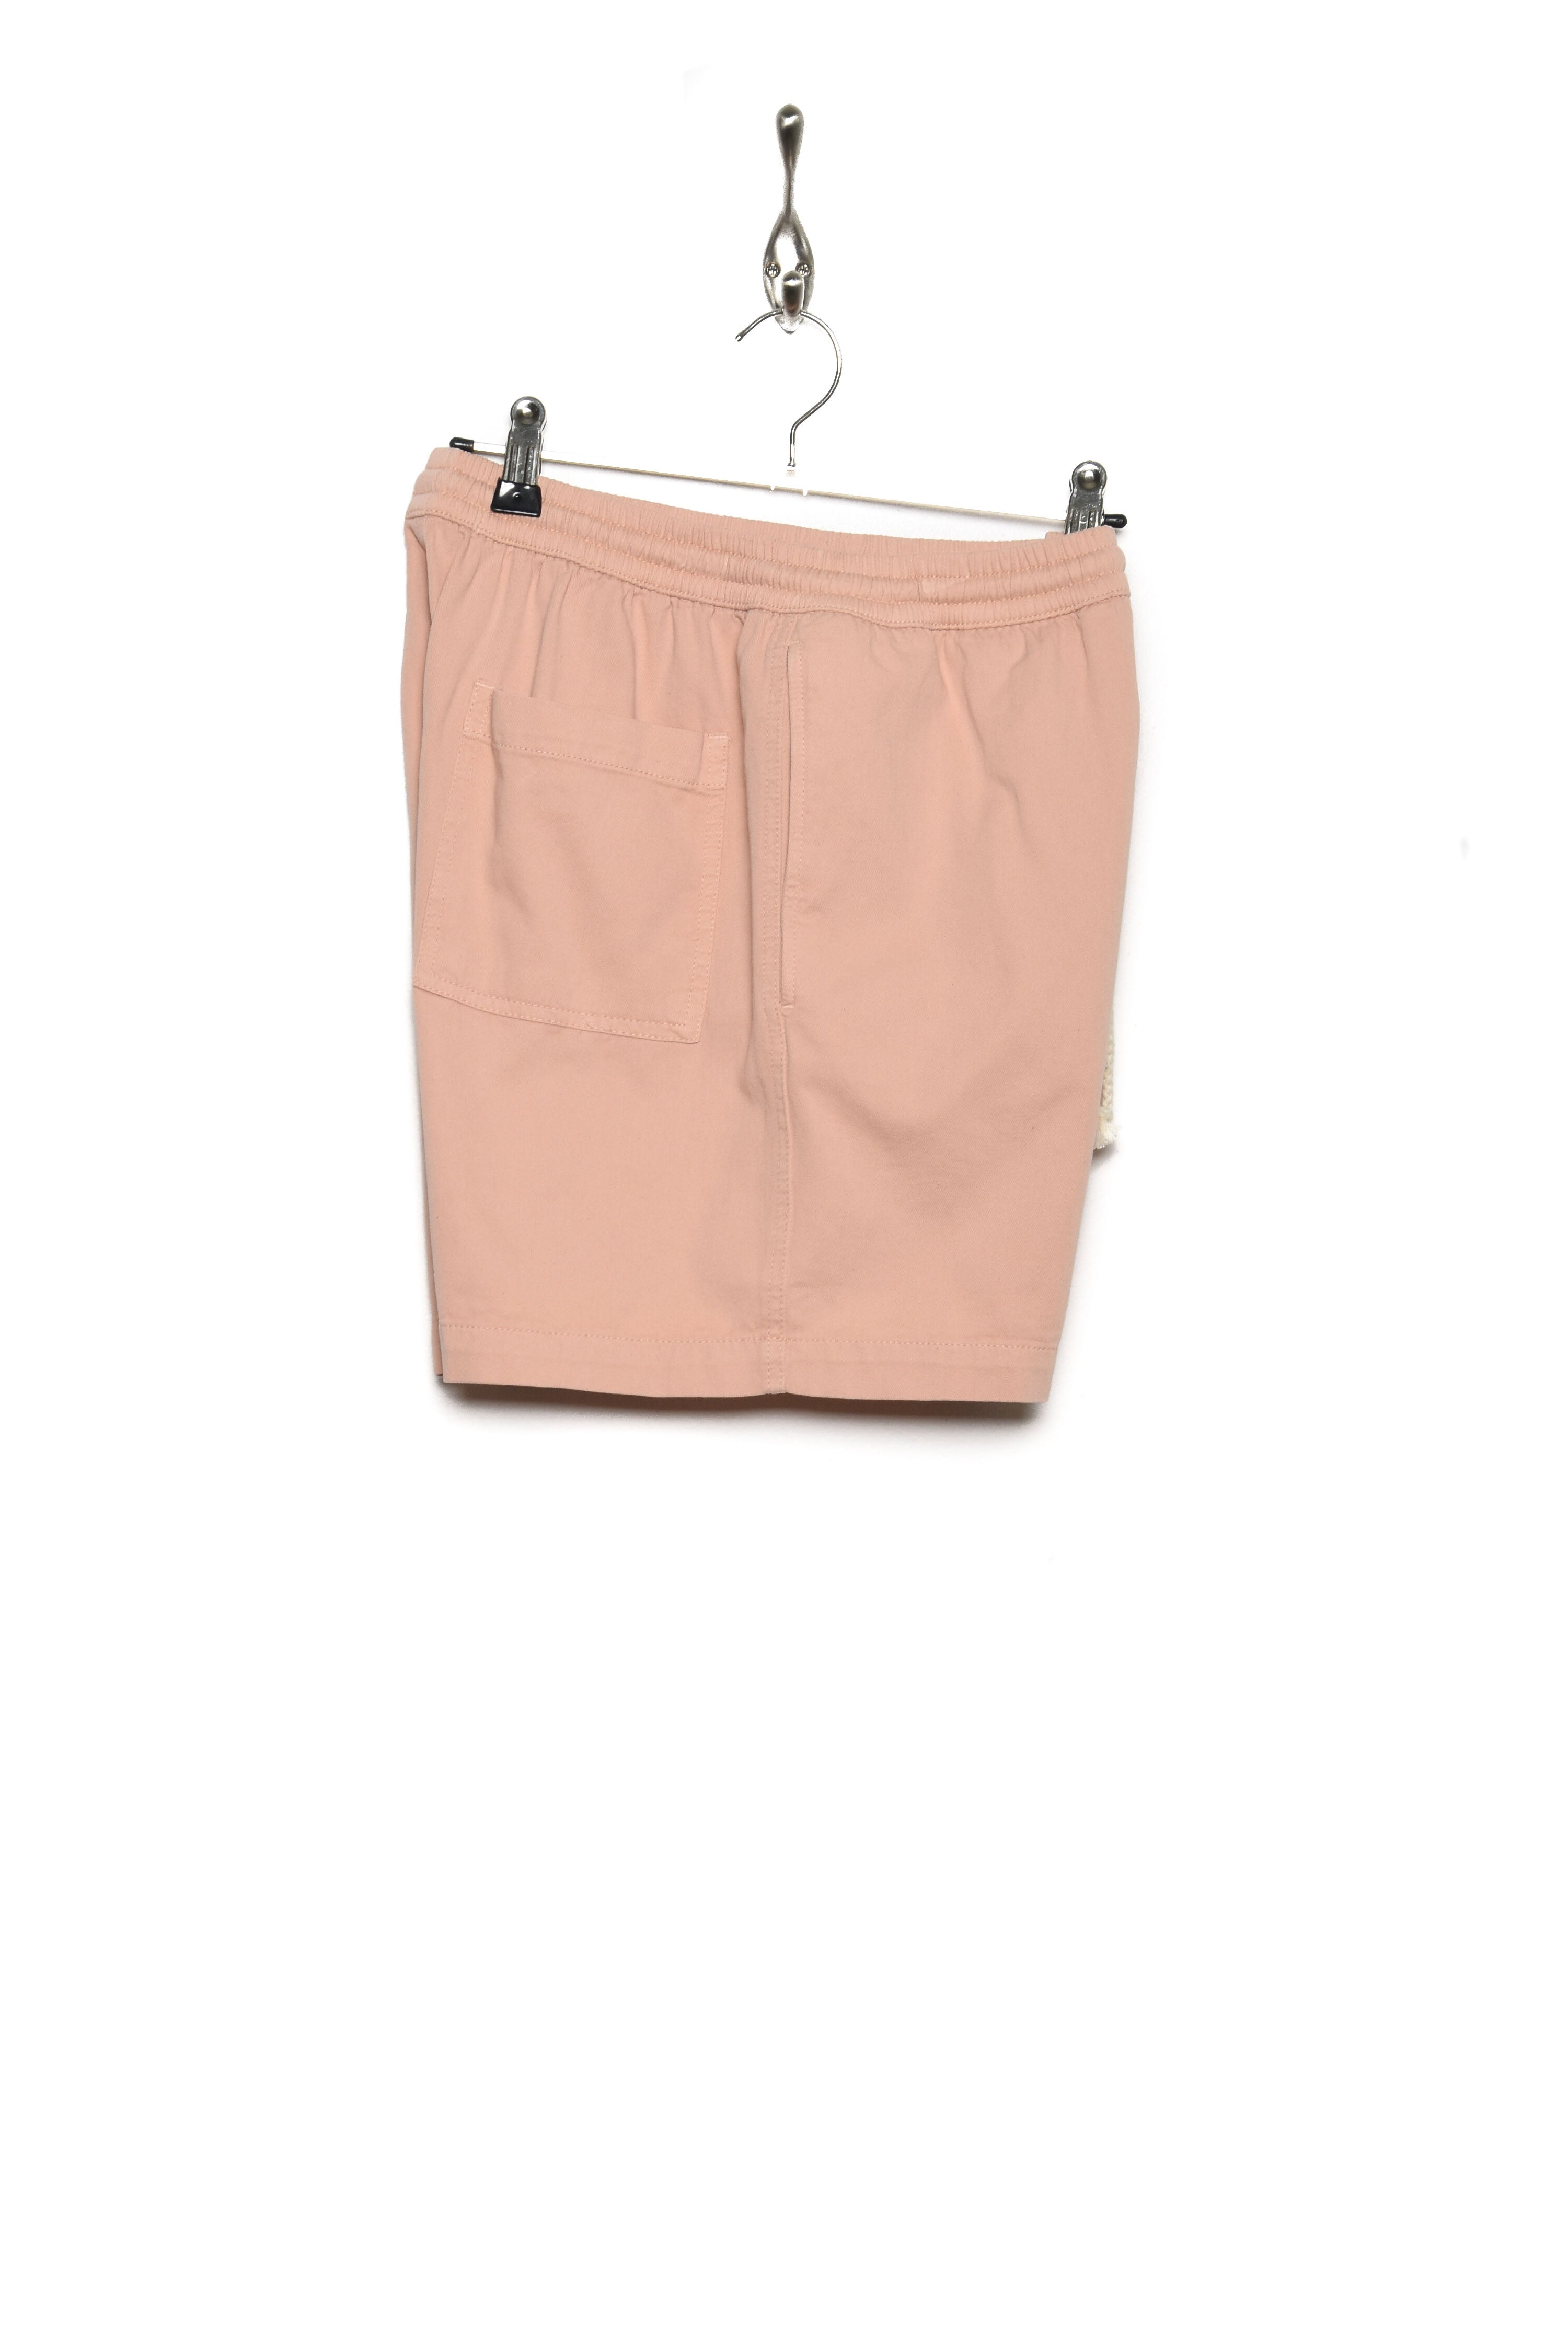 Olow Bodhi Shorts rose